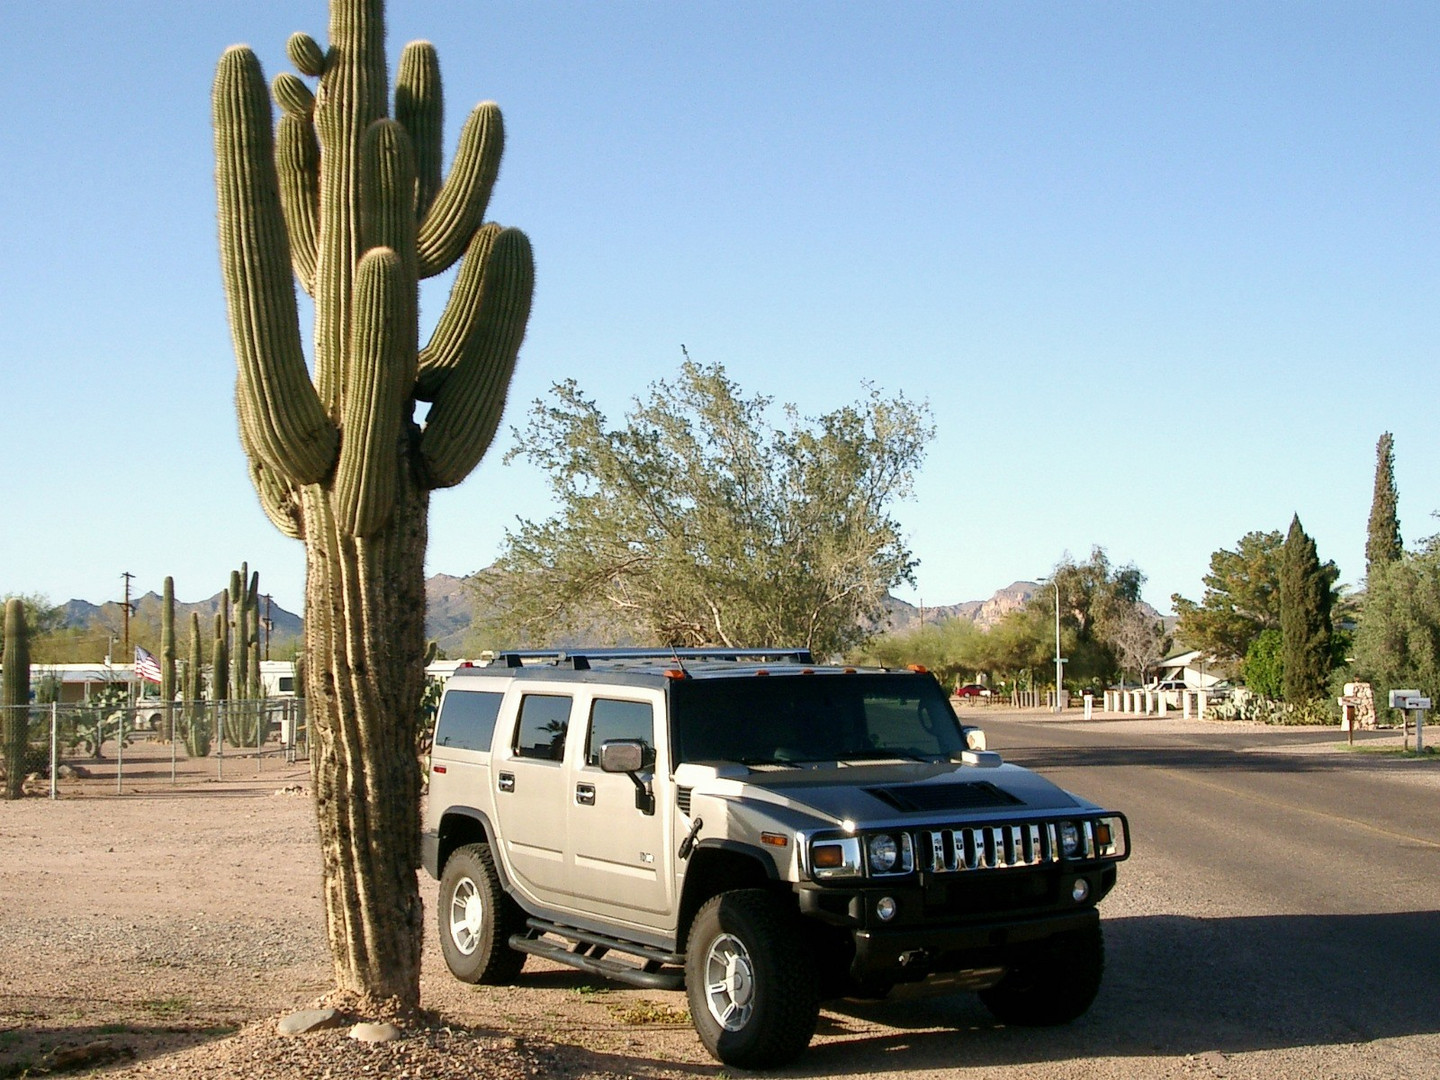 Cactus & Hummer